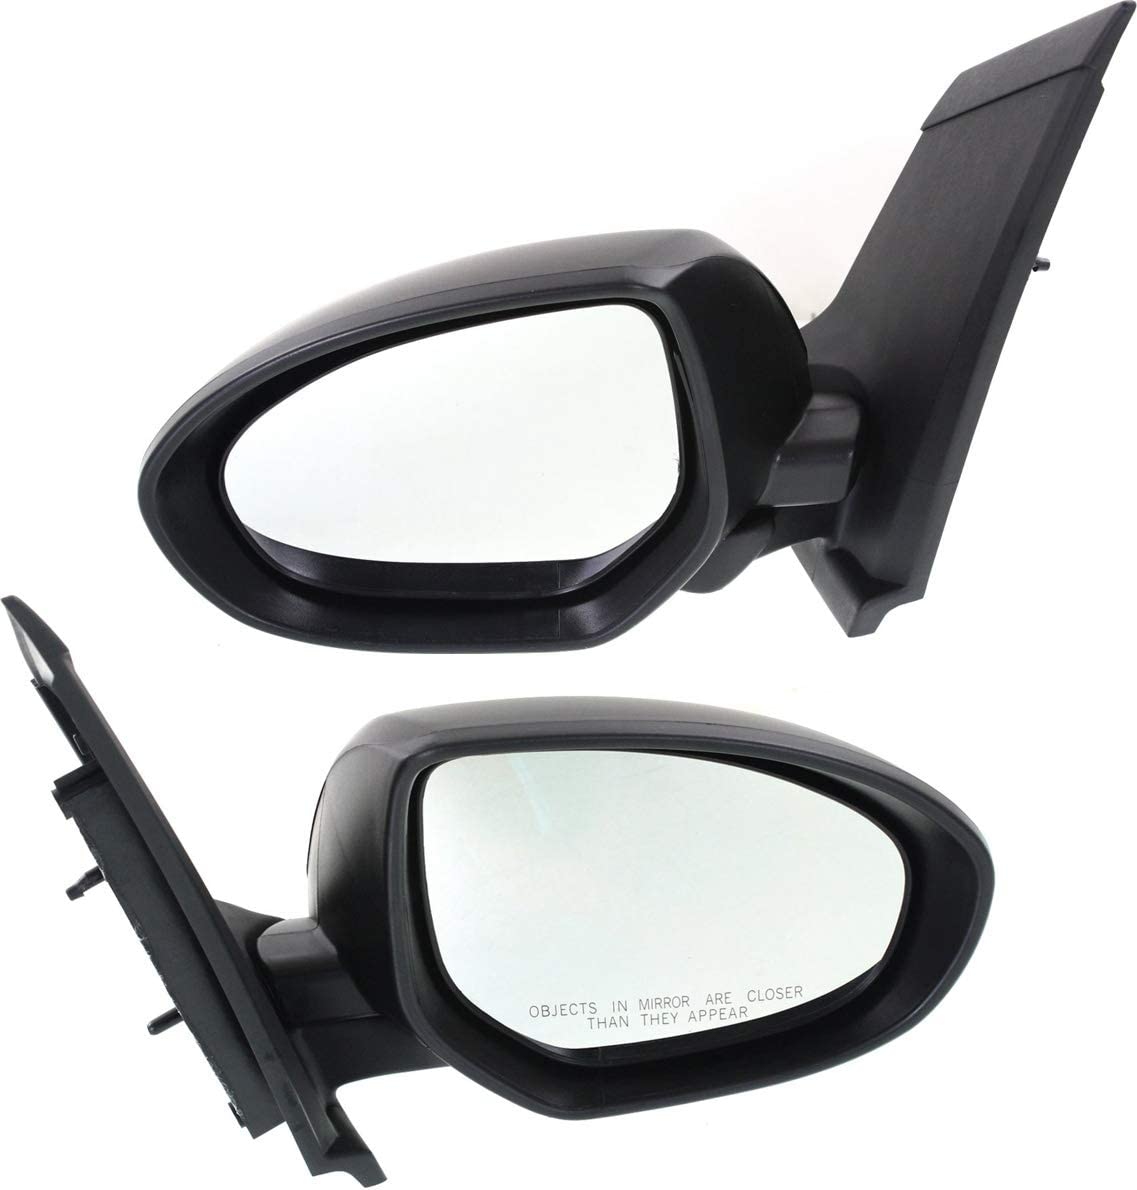 Kool Vue Elegant Power Mirror compatible with 11-14 Ranking TOP6 Mazda 2 Le Right and